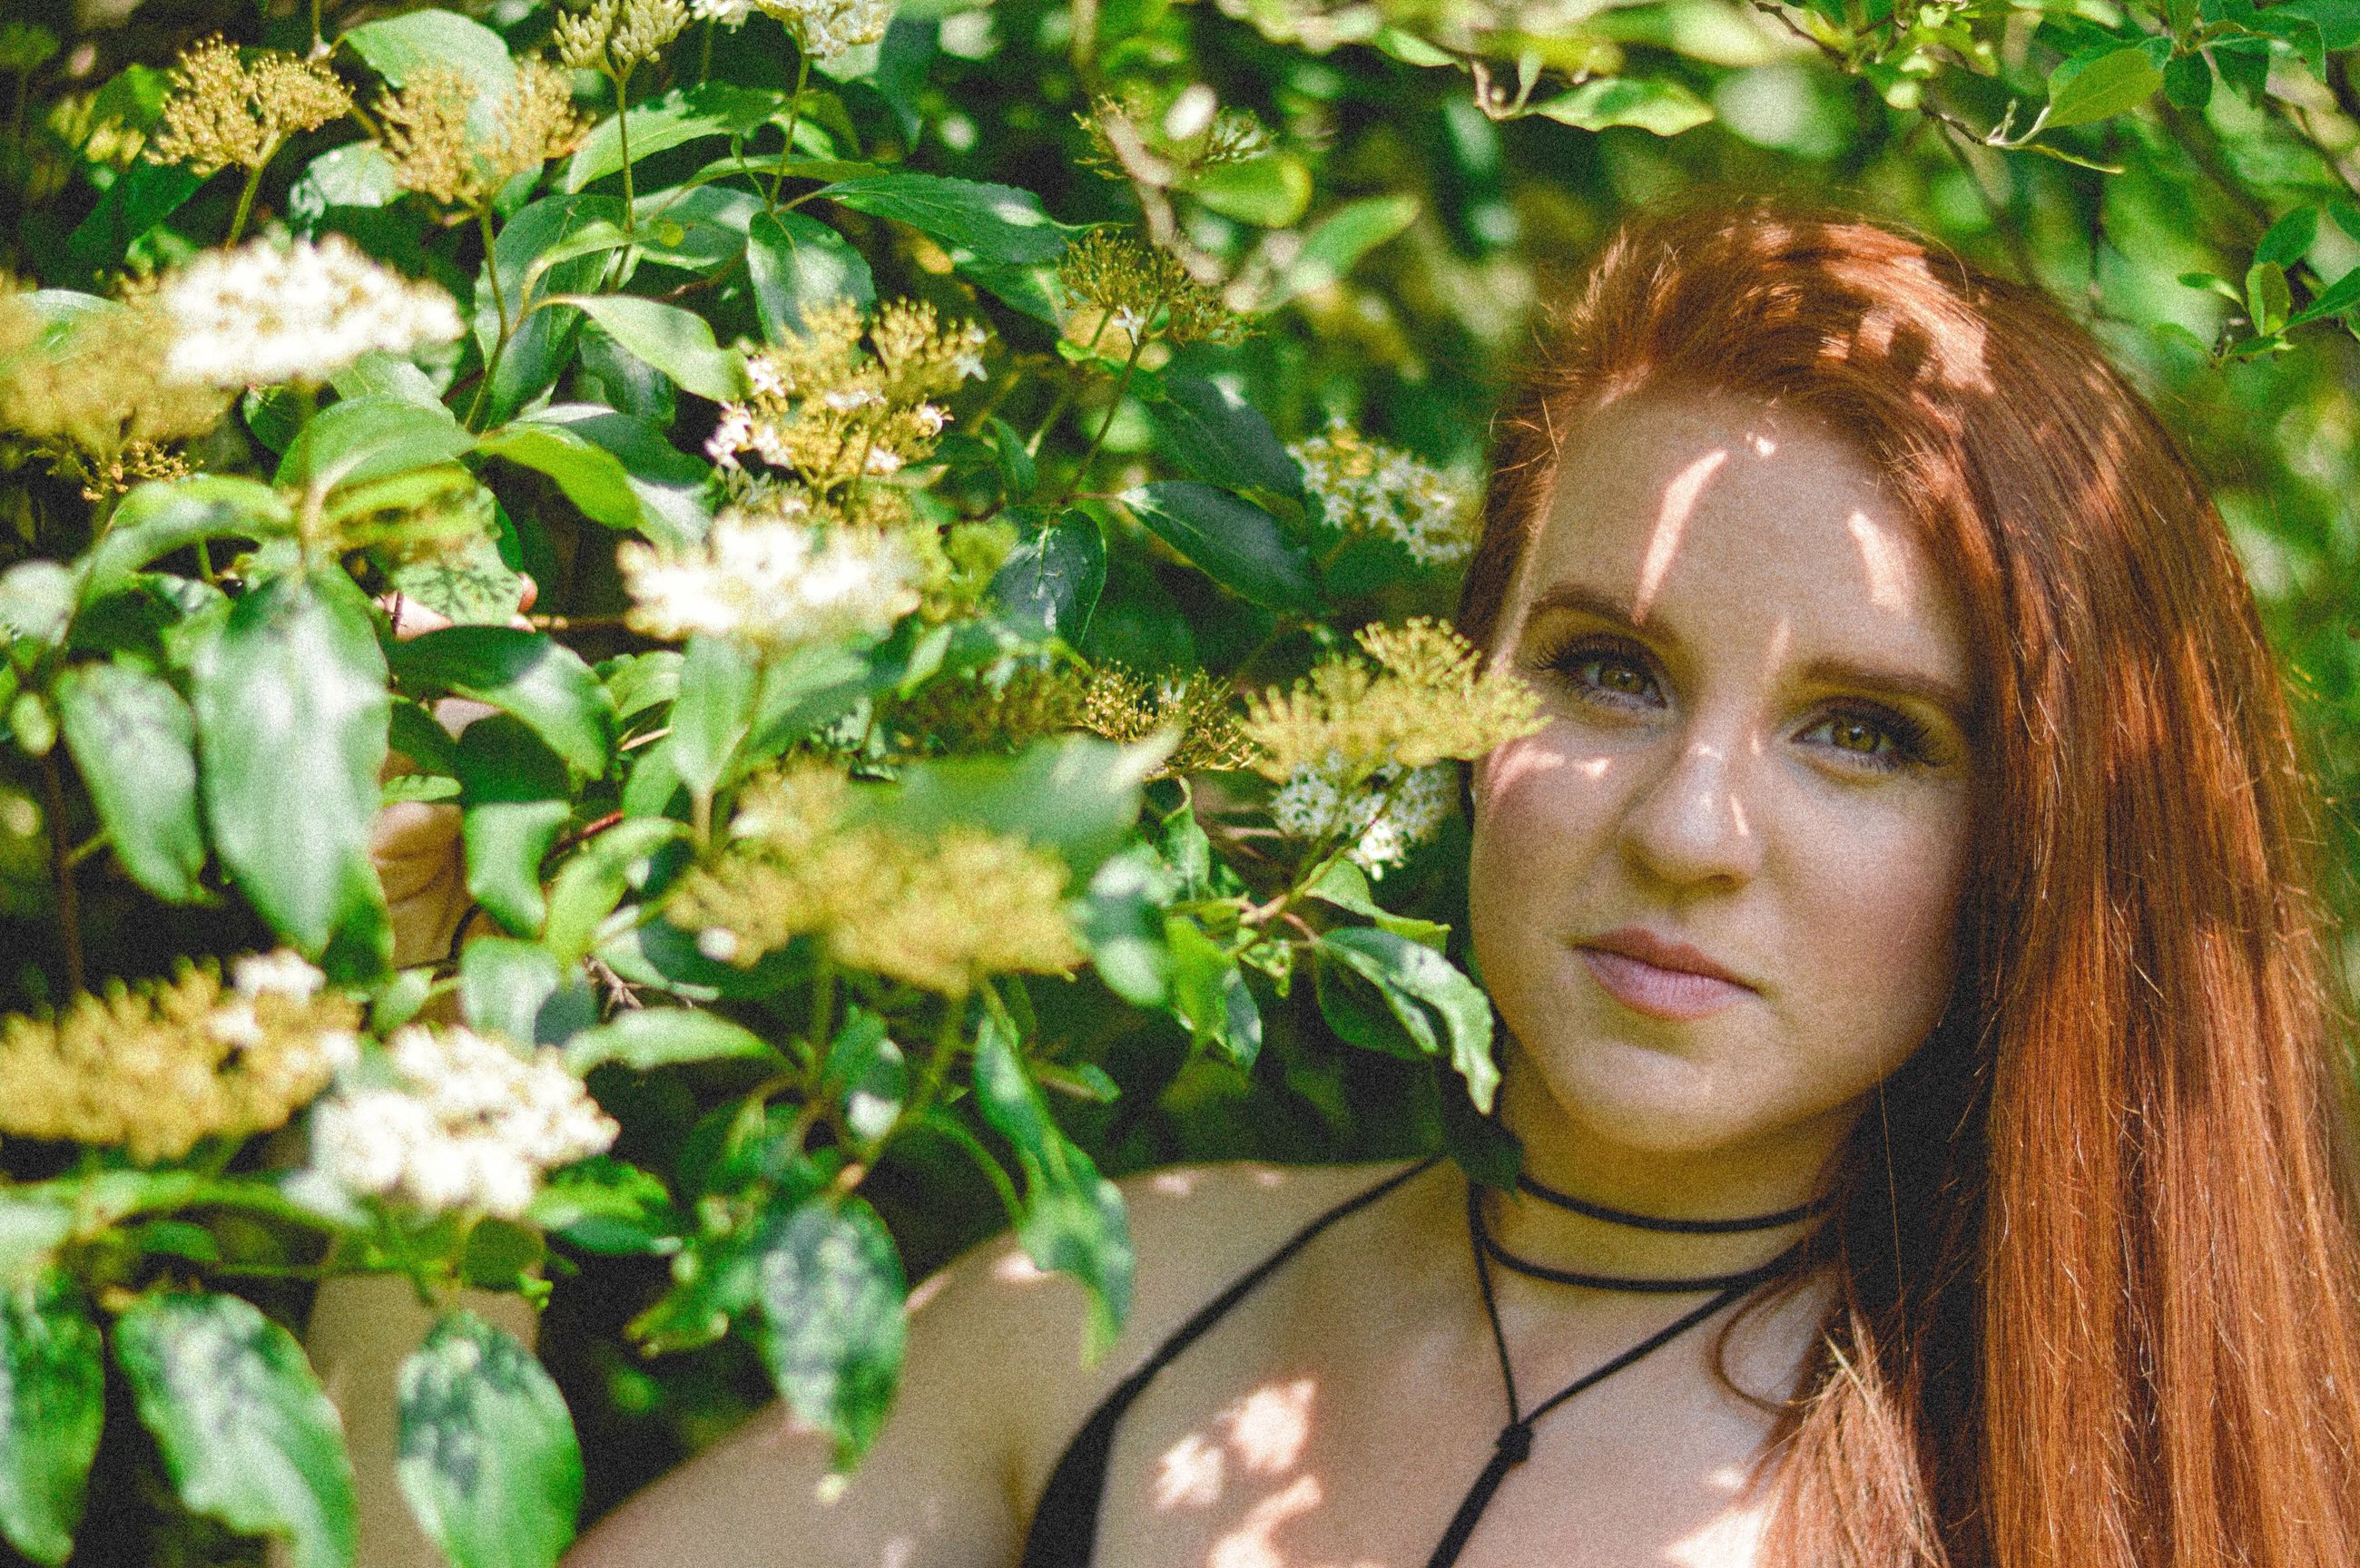 redhead, looking at camera, one person, headshot, beautiful woman, day, portrait, outdoors, tree, young adult, sunlight, nature, beauty, young women, flower, real people, close-up, beauty in nature, one young woman only, adults only, adult, people